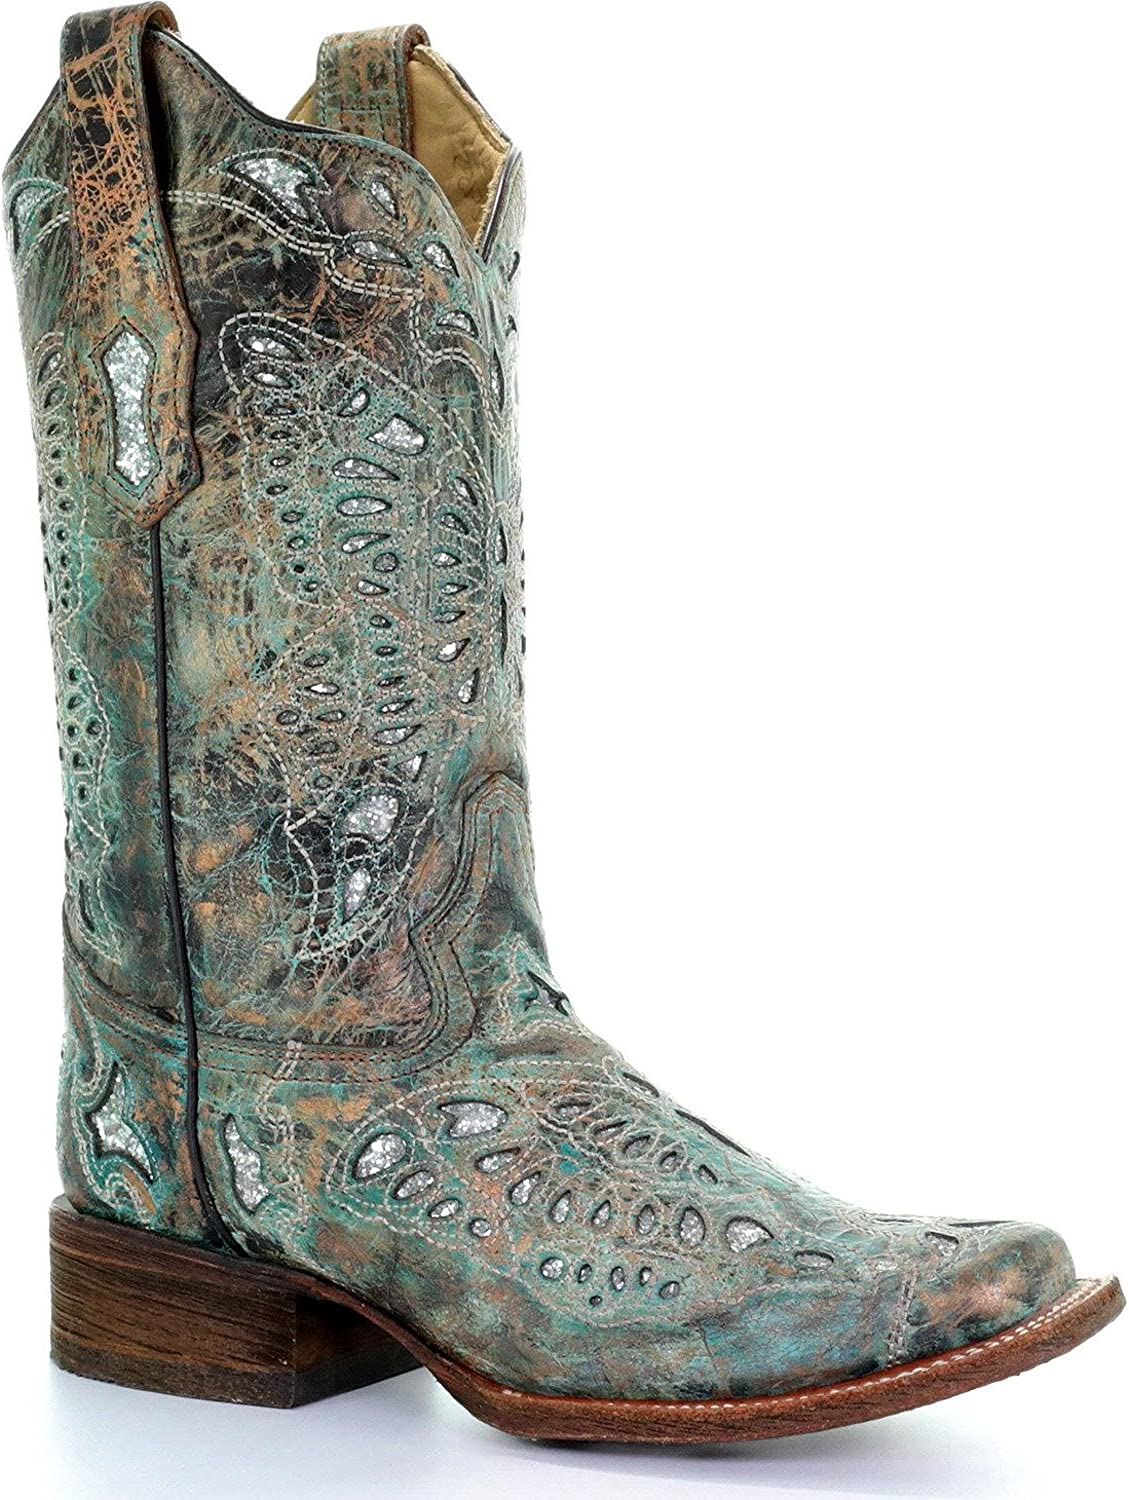 CORRAL Women's Metallic Bronze Glitter Butterfly Cowgirl Boot Square Toe - A2955